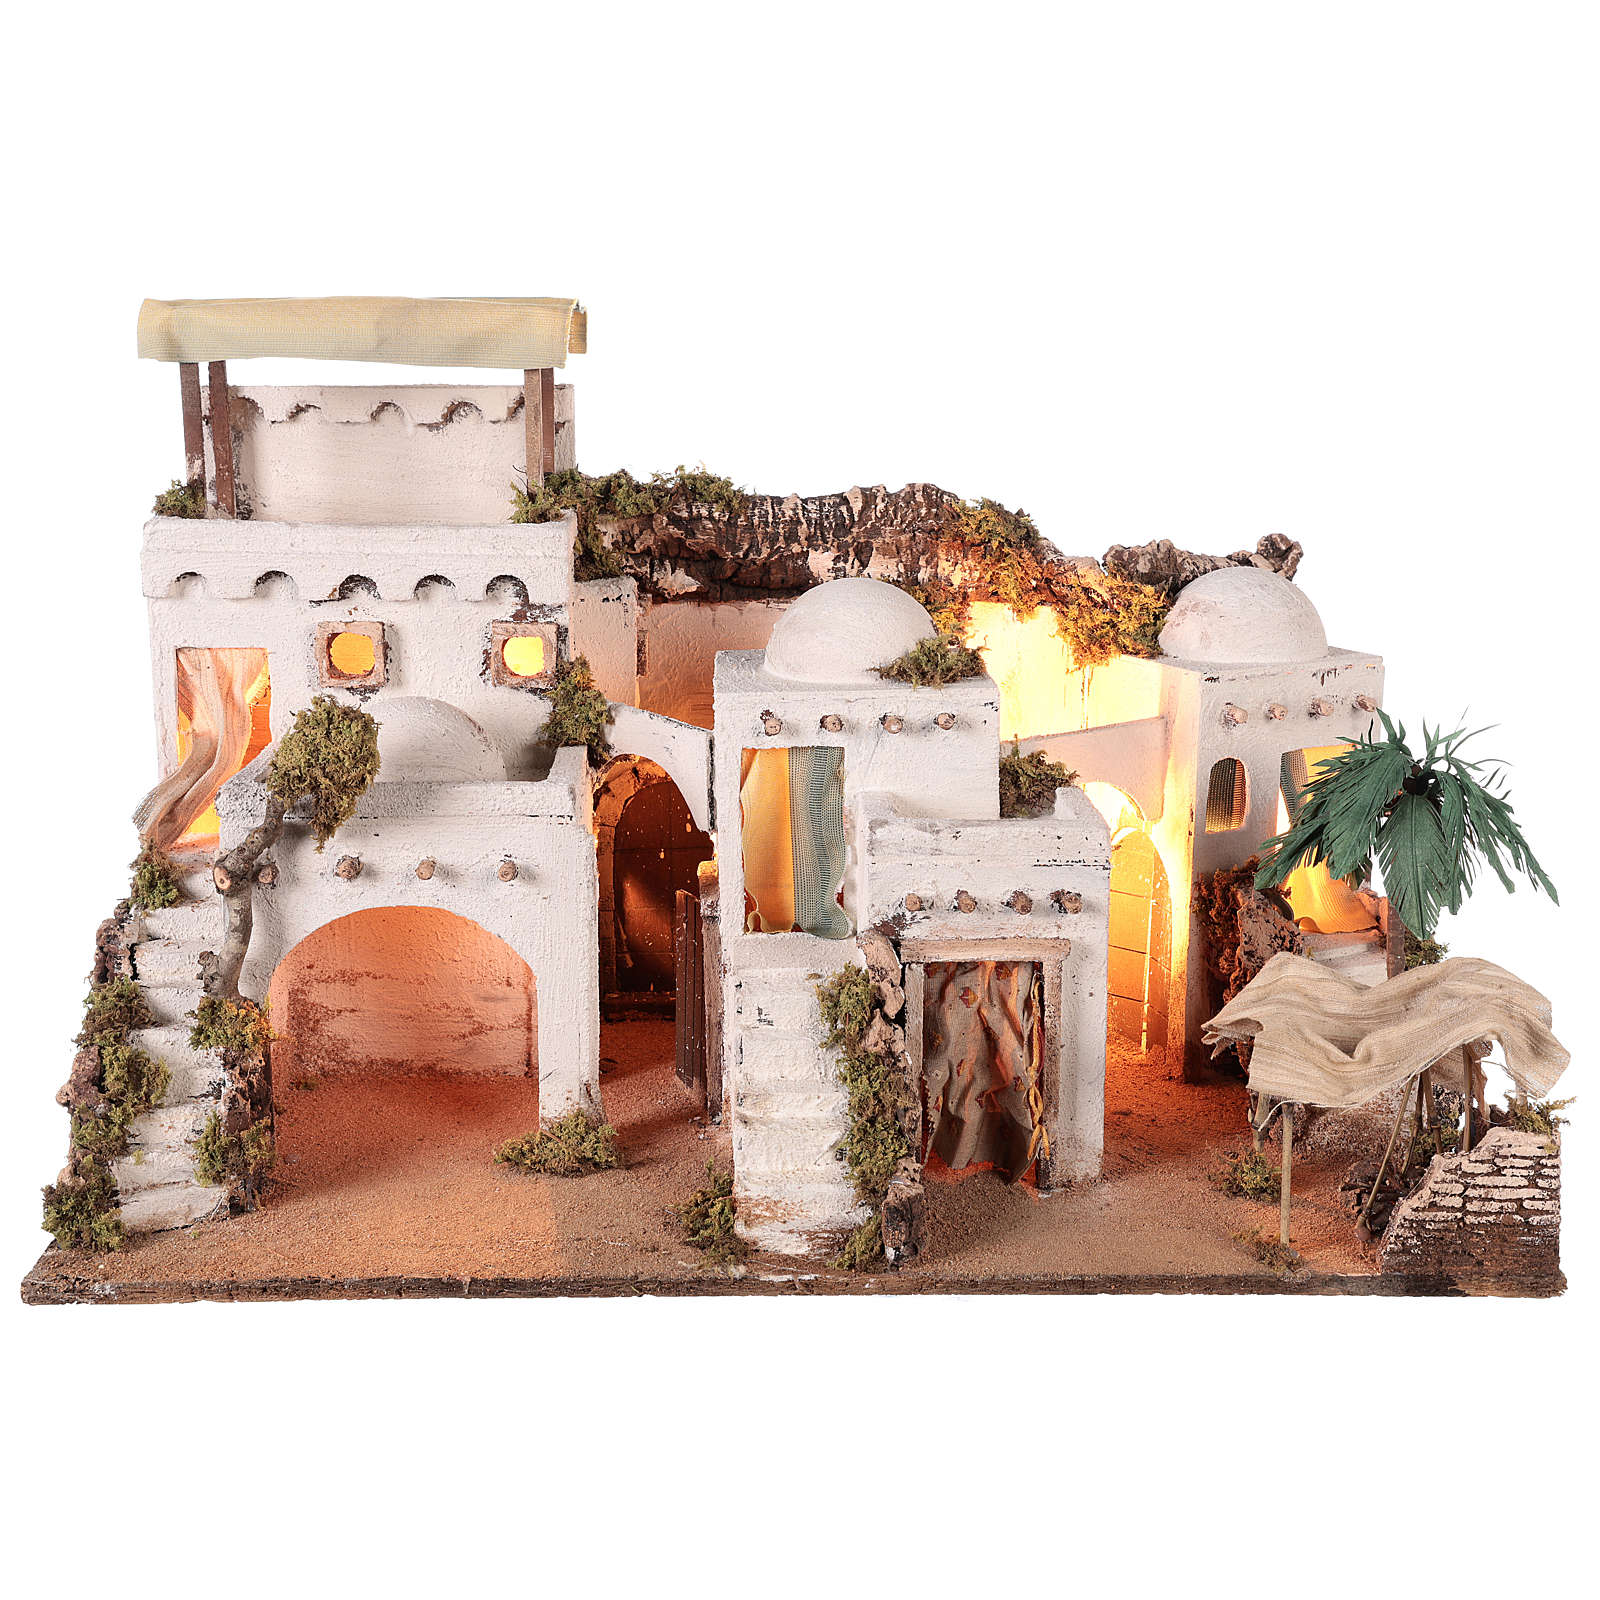 Arab-style village with curtain for 10-12 cm Neapolitan Nativity scene 4